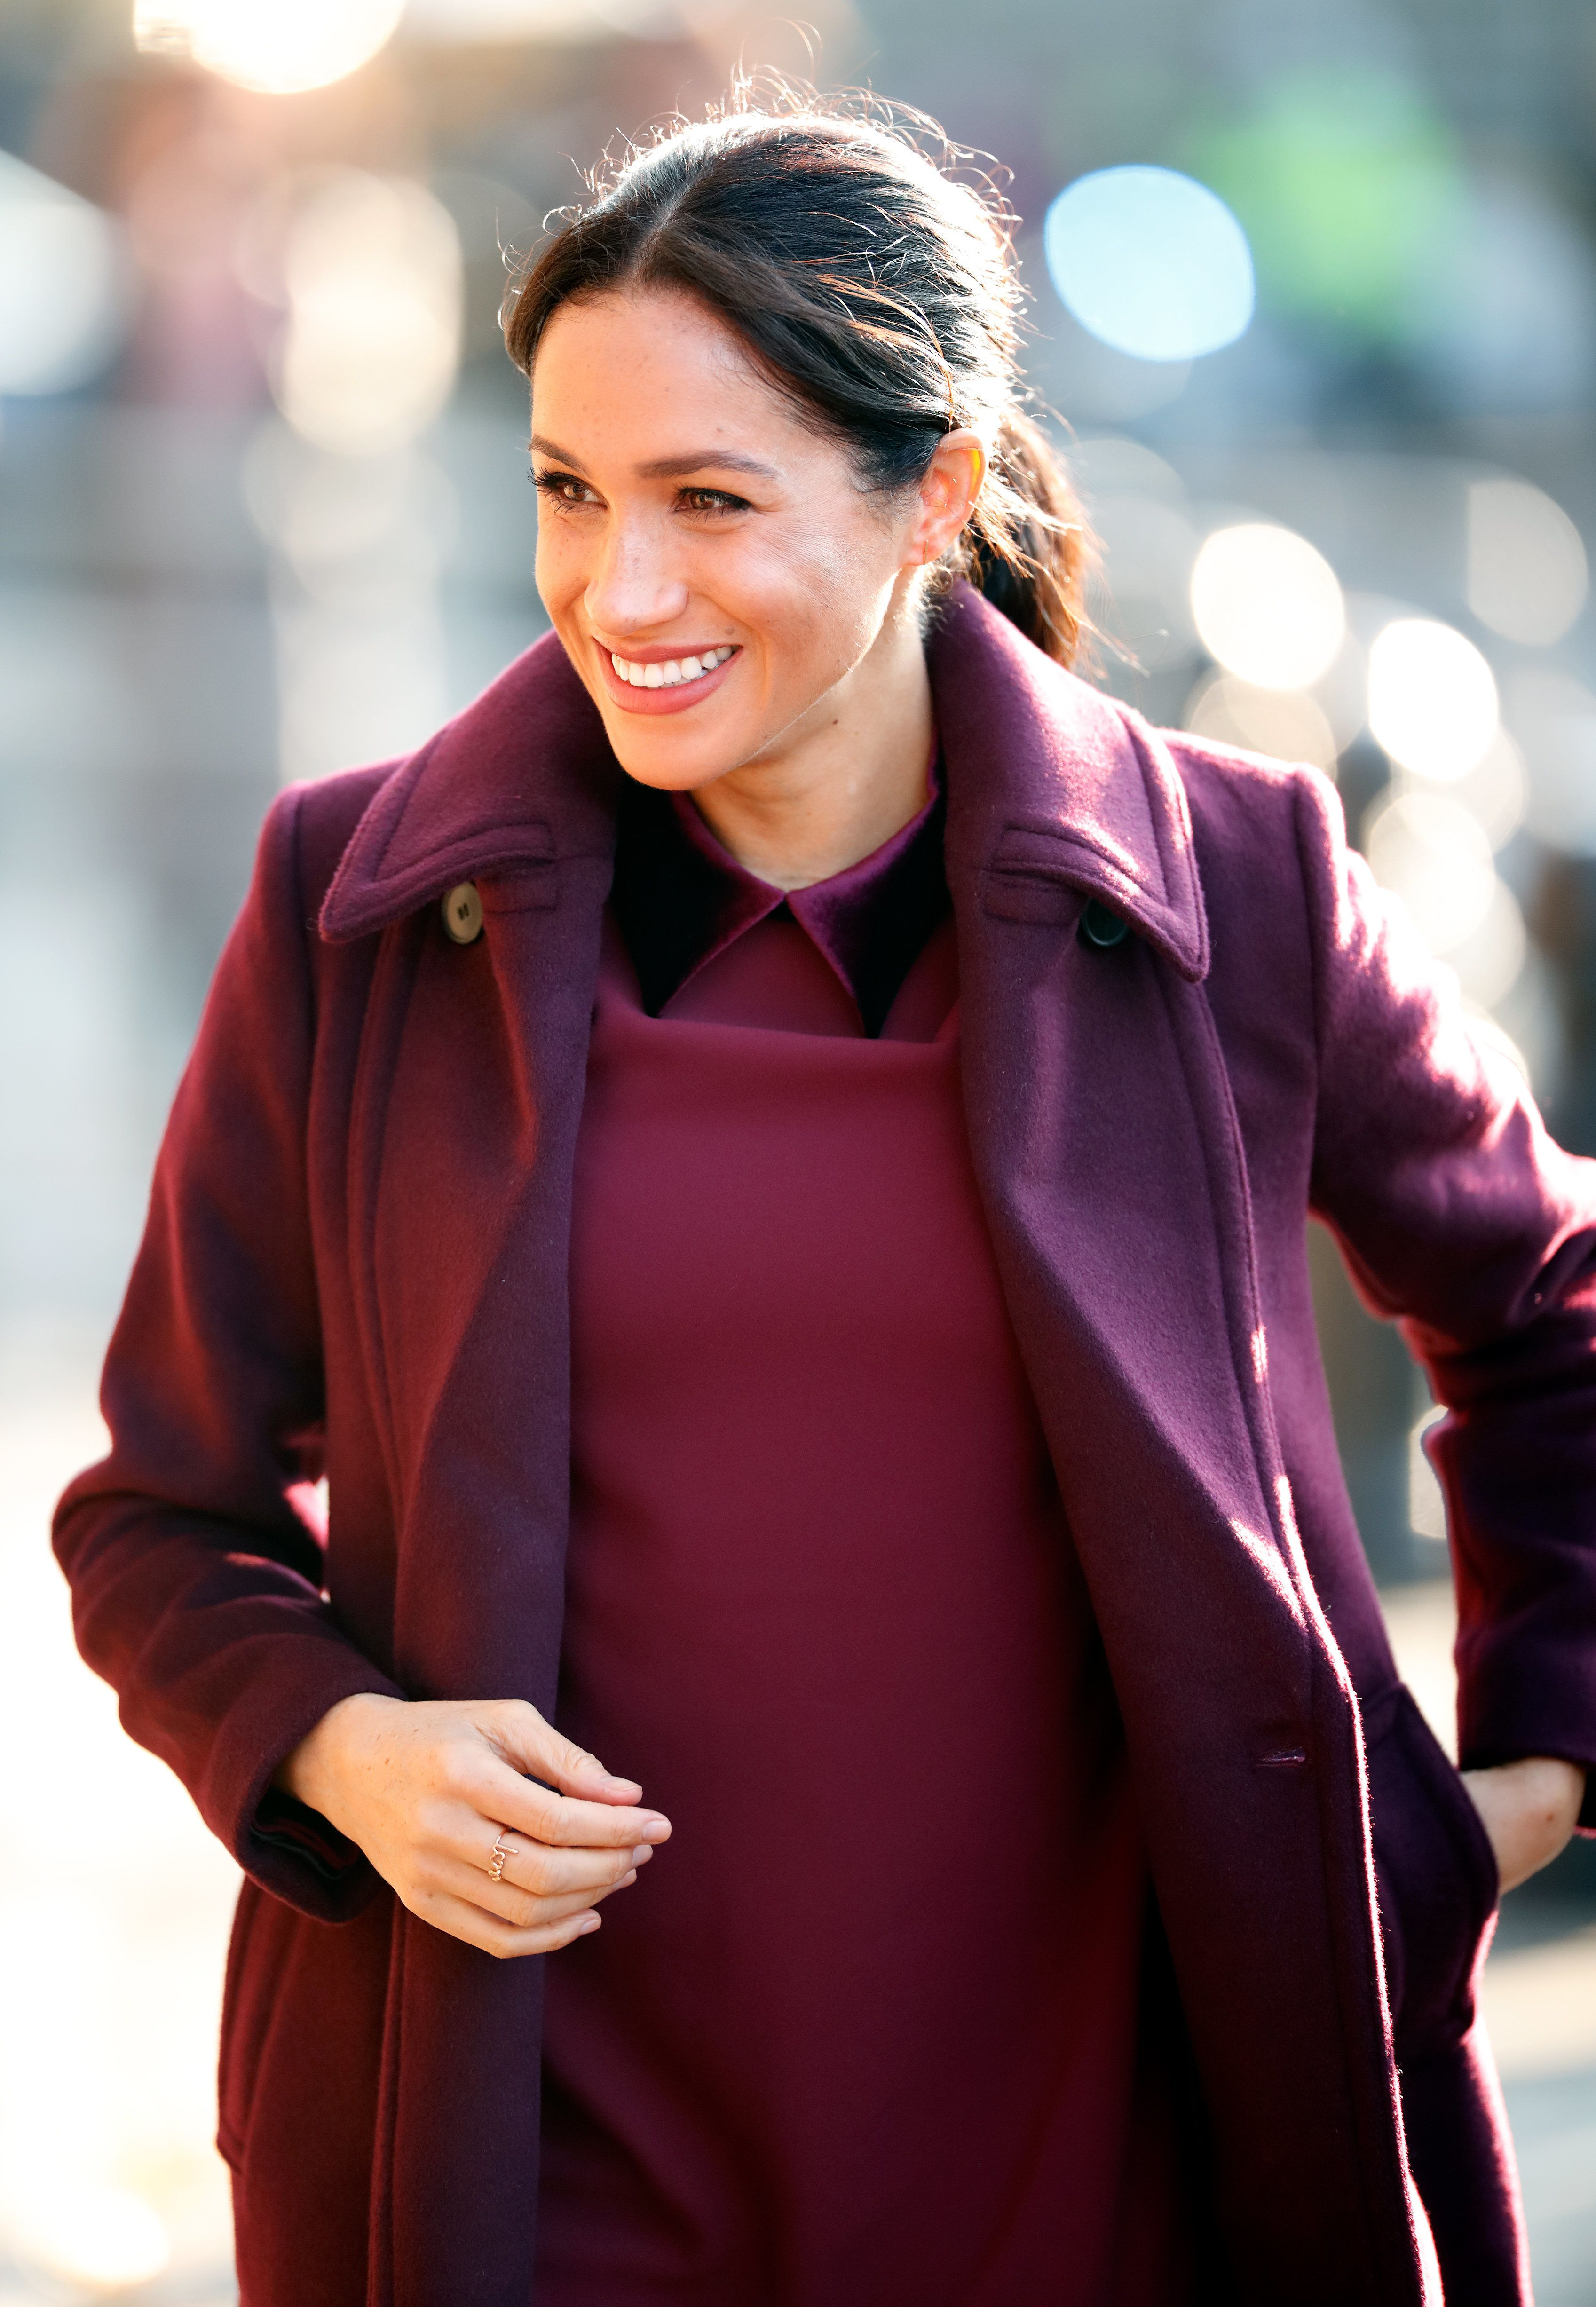 Let's Stop Speculating About Meghan Markle Having Twins (And Lay Off Her Baby Bump,